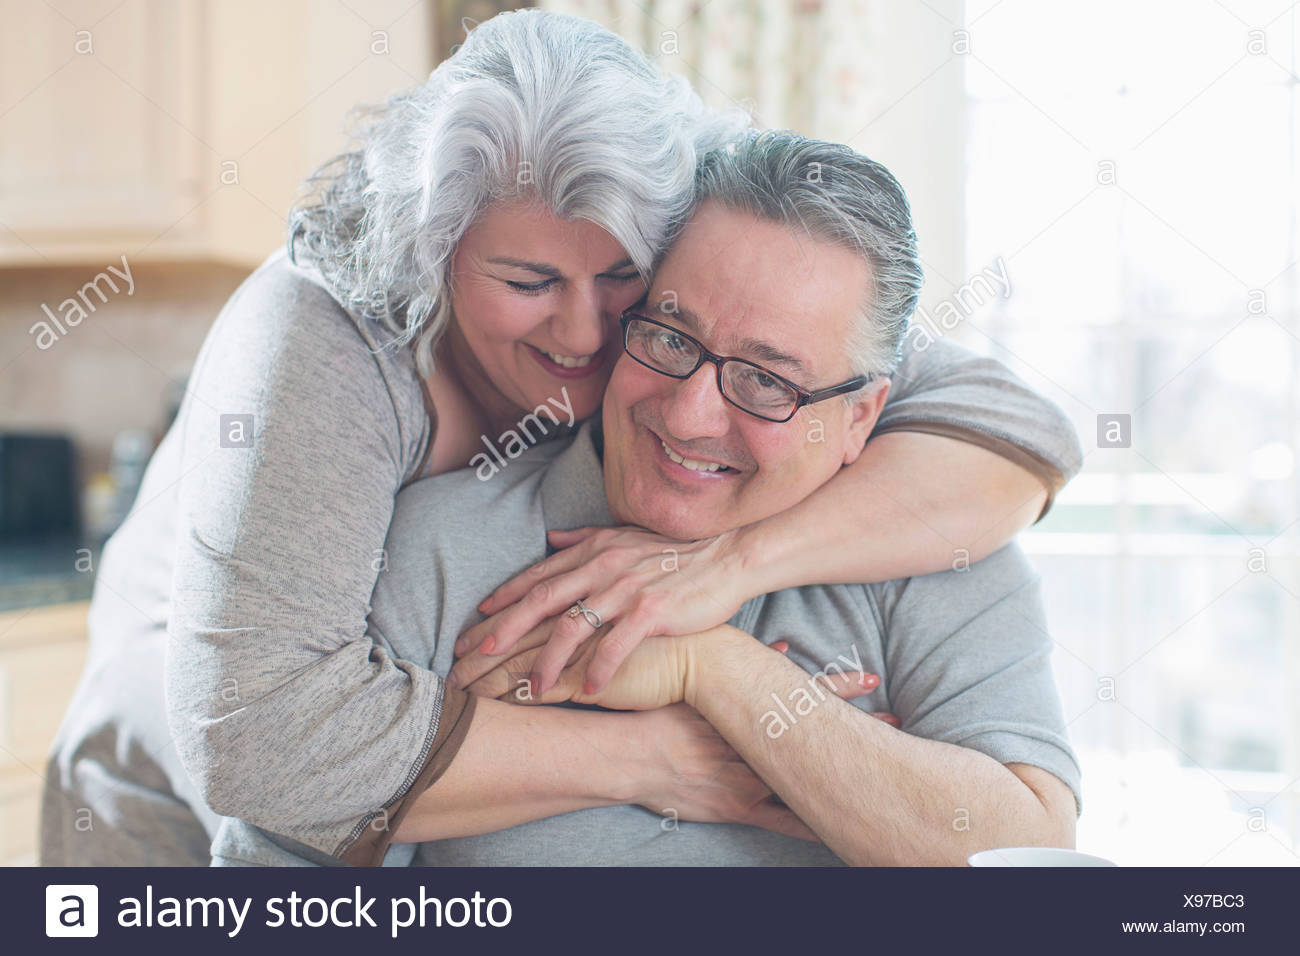 Affectionate mature adult couple hugging at home - Stock Image